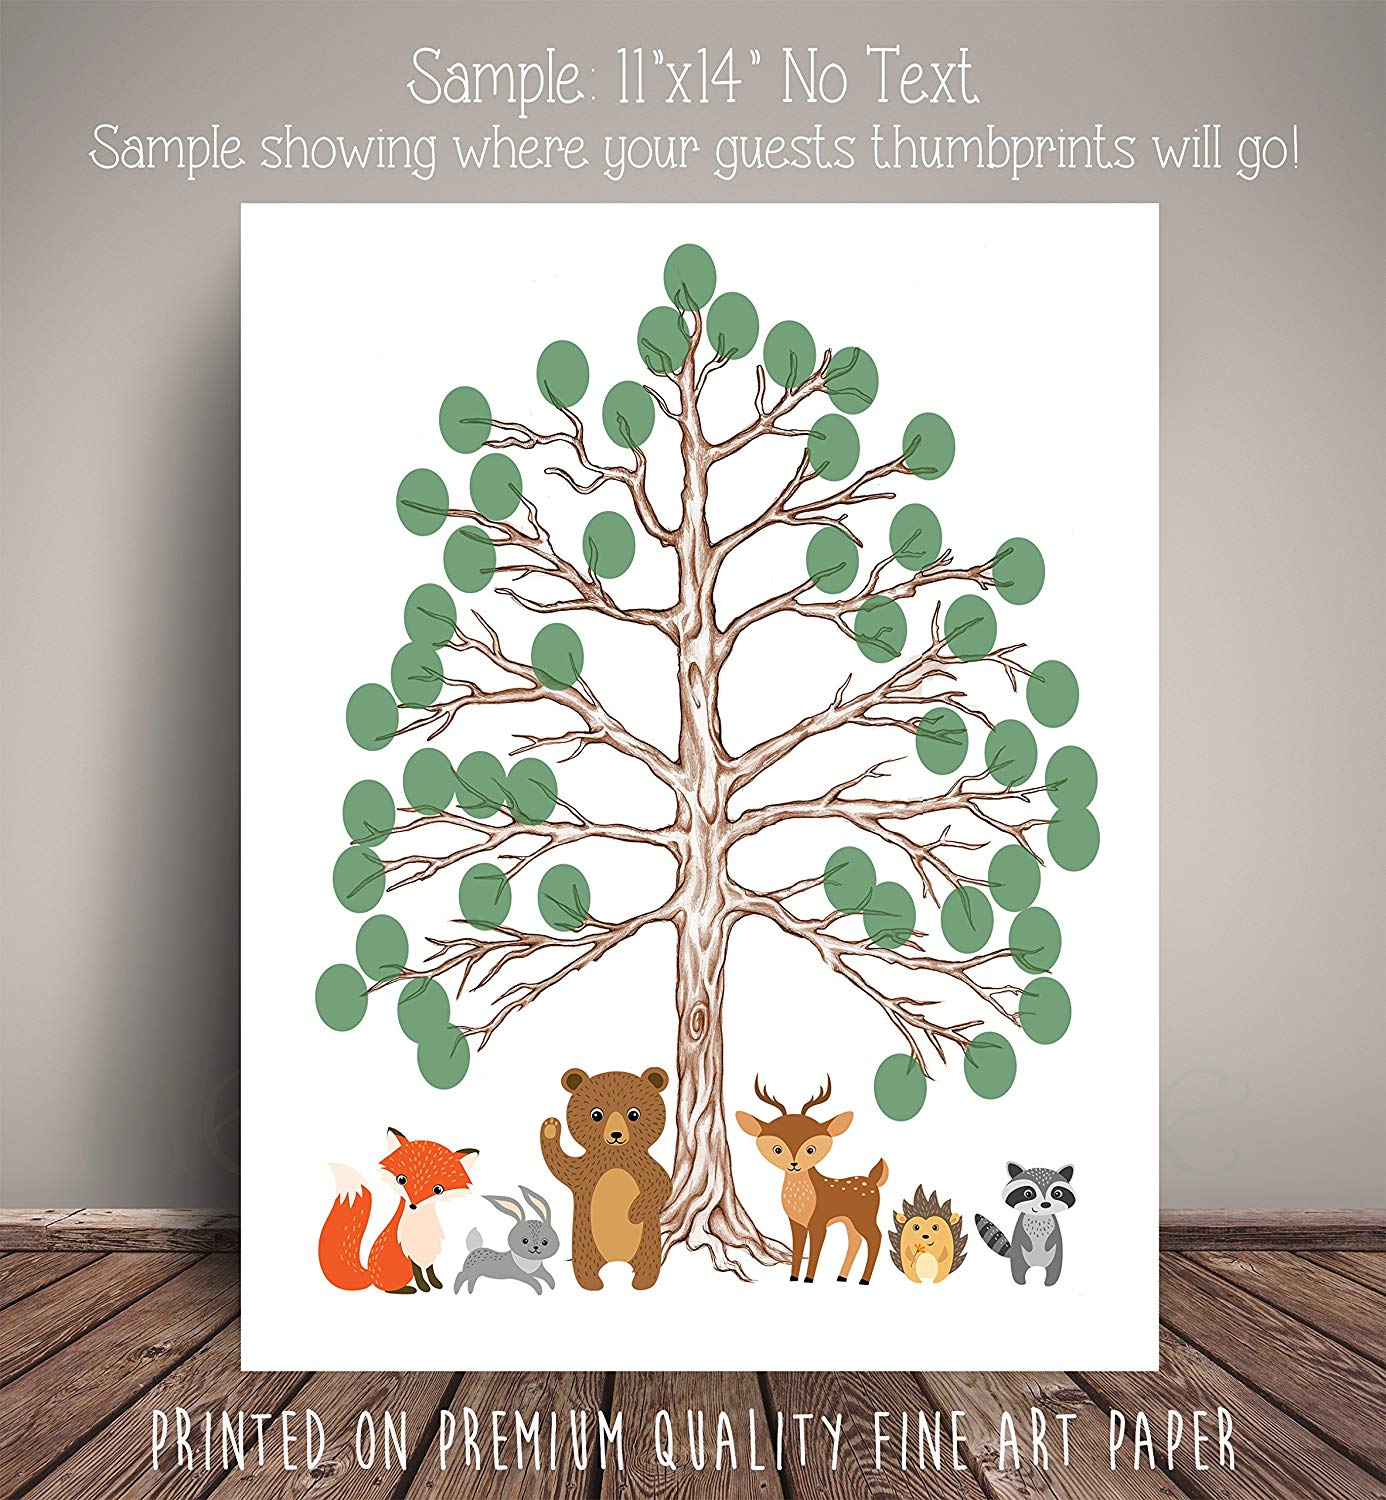 Woodland Forest Friends Baby Shower Nursery Art Memorabilia - Thumbprint Tree for Woodland Nursery - Fine Art Paper WCLBT01-TH